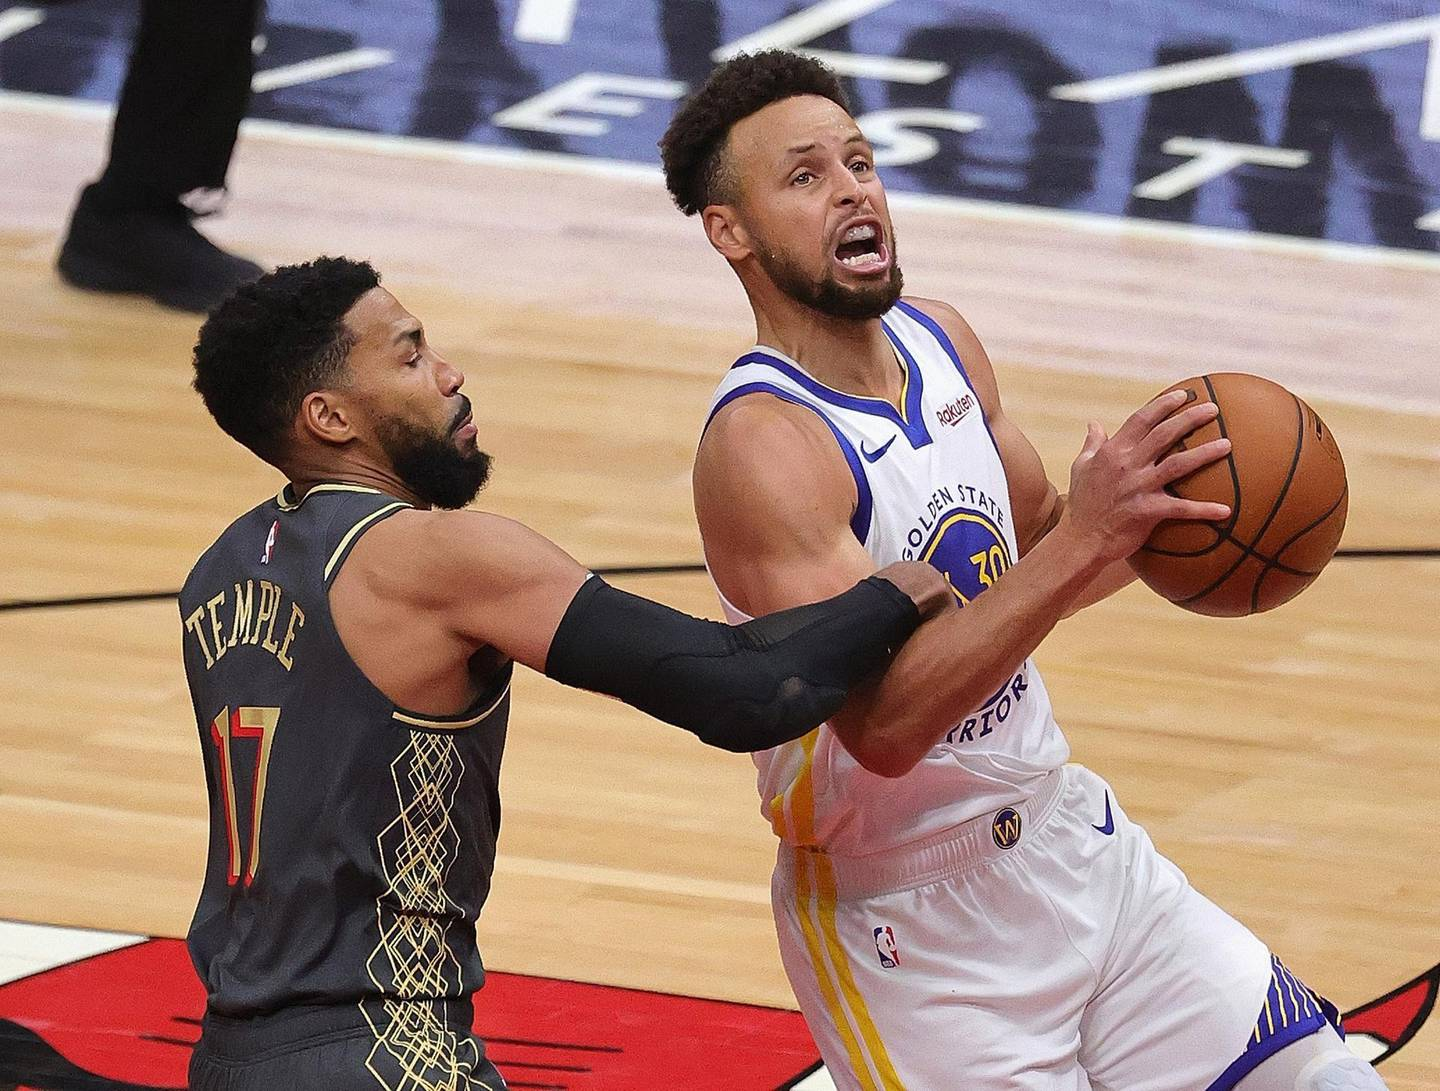 CHICAGO, ILLINOIS - DECEMBER 27: Stephen Curry #30 of the Golden State Warriors is fouled by Garrett Temple #17 of the Chicago Bulls at the United Center on December 27, 2020 in Chicago, Illinois. The Warriors defeated the Bulls 129-128. NOTE TO USER: User expressly acknowledges and agrees that, by downloading and or using this photograph, User is consenting to the terms and conditions of the Getty Images License Agreement.   Jonathan Daniel/Getty Images/AFP == FOR NEWSPAPERS, INTERNET, TELCOS & TELEVISION USE ONLY ==